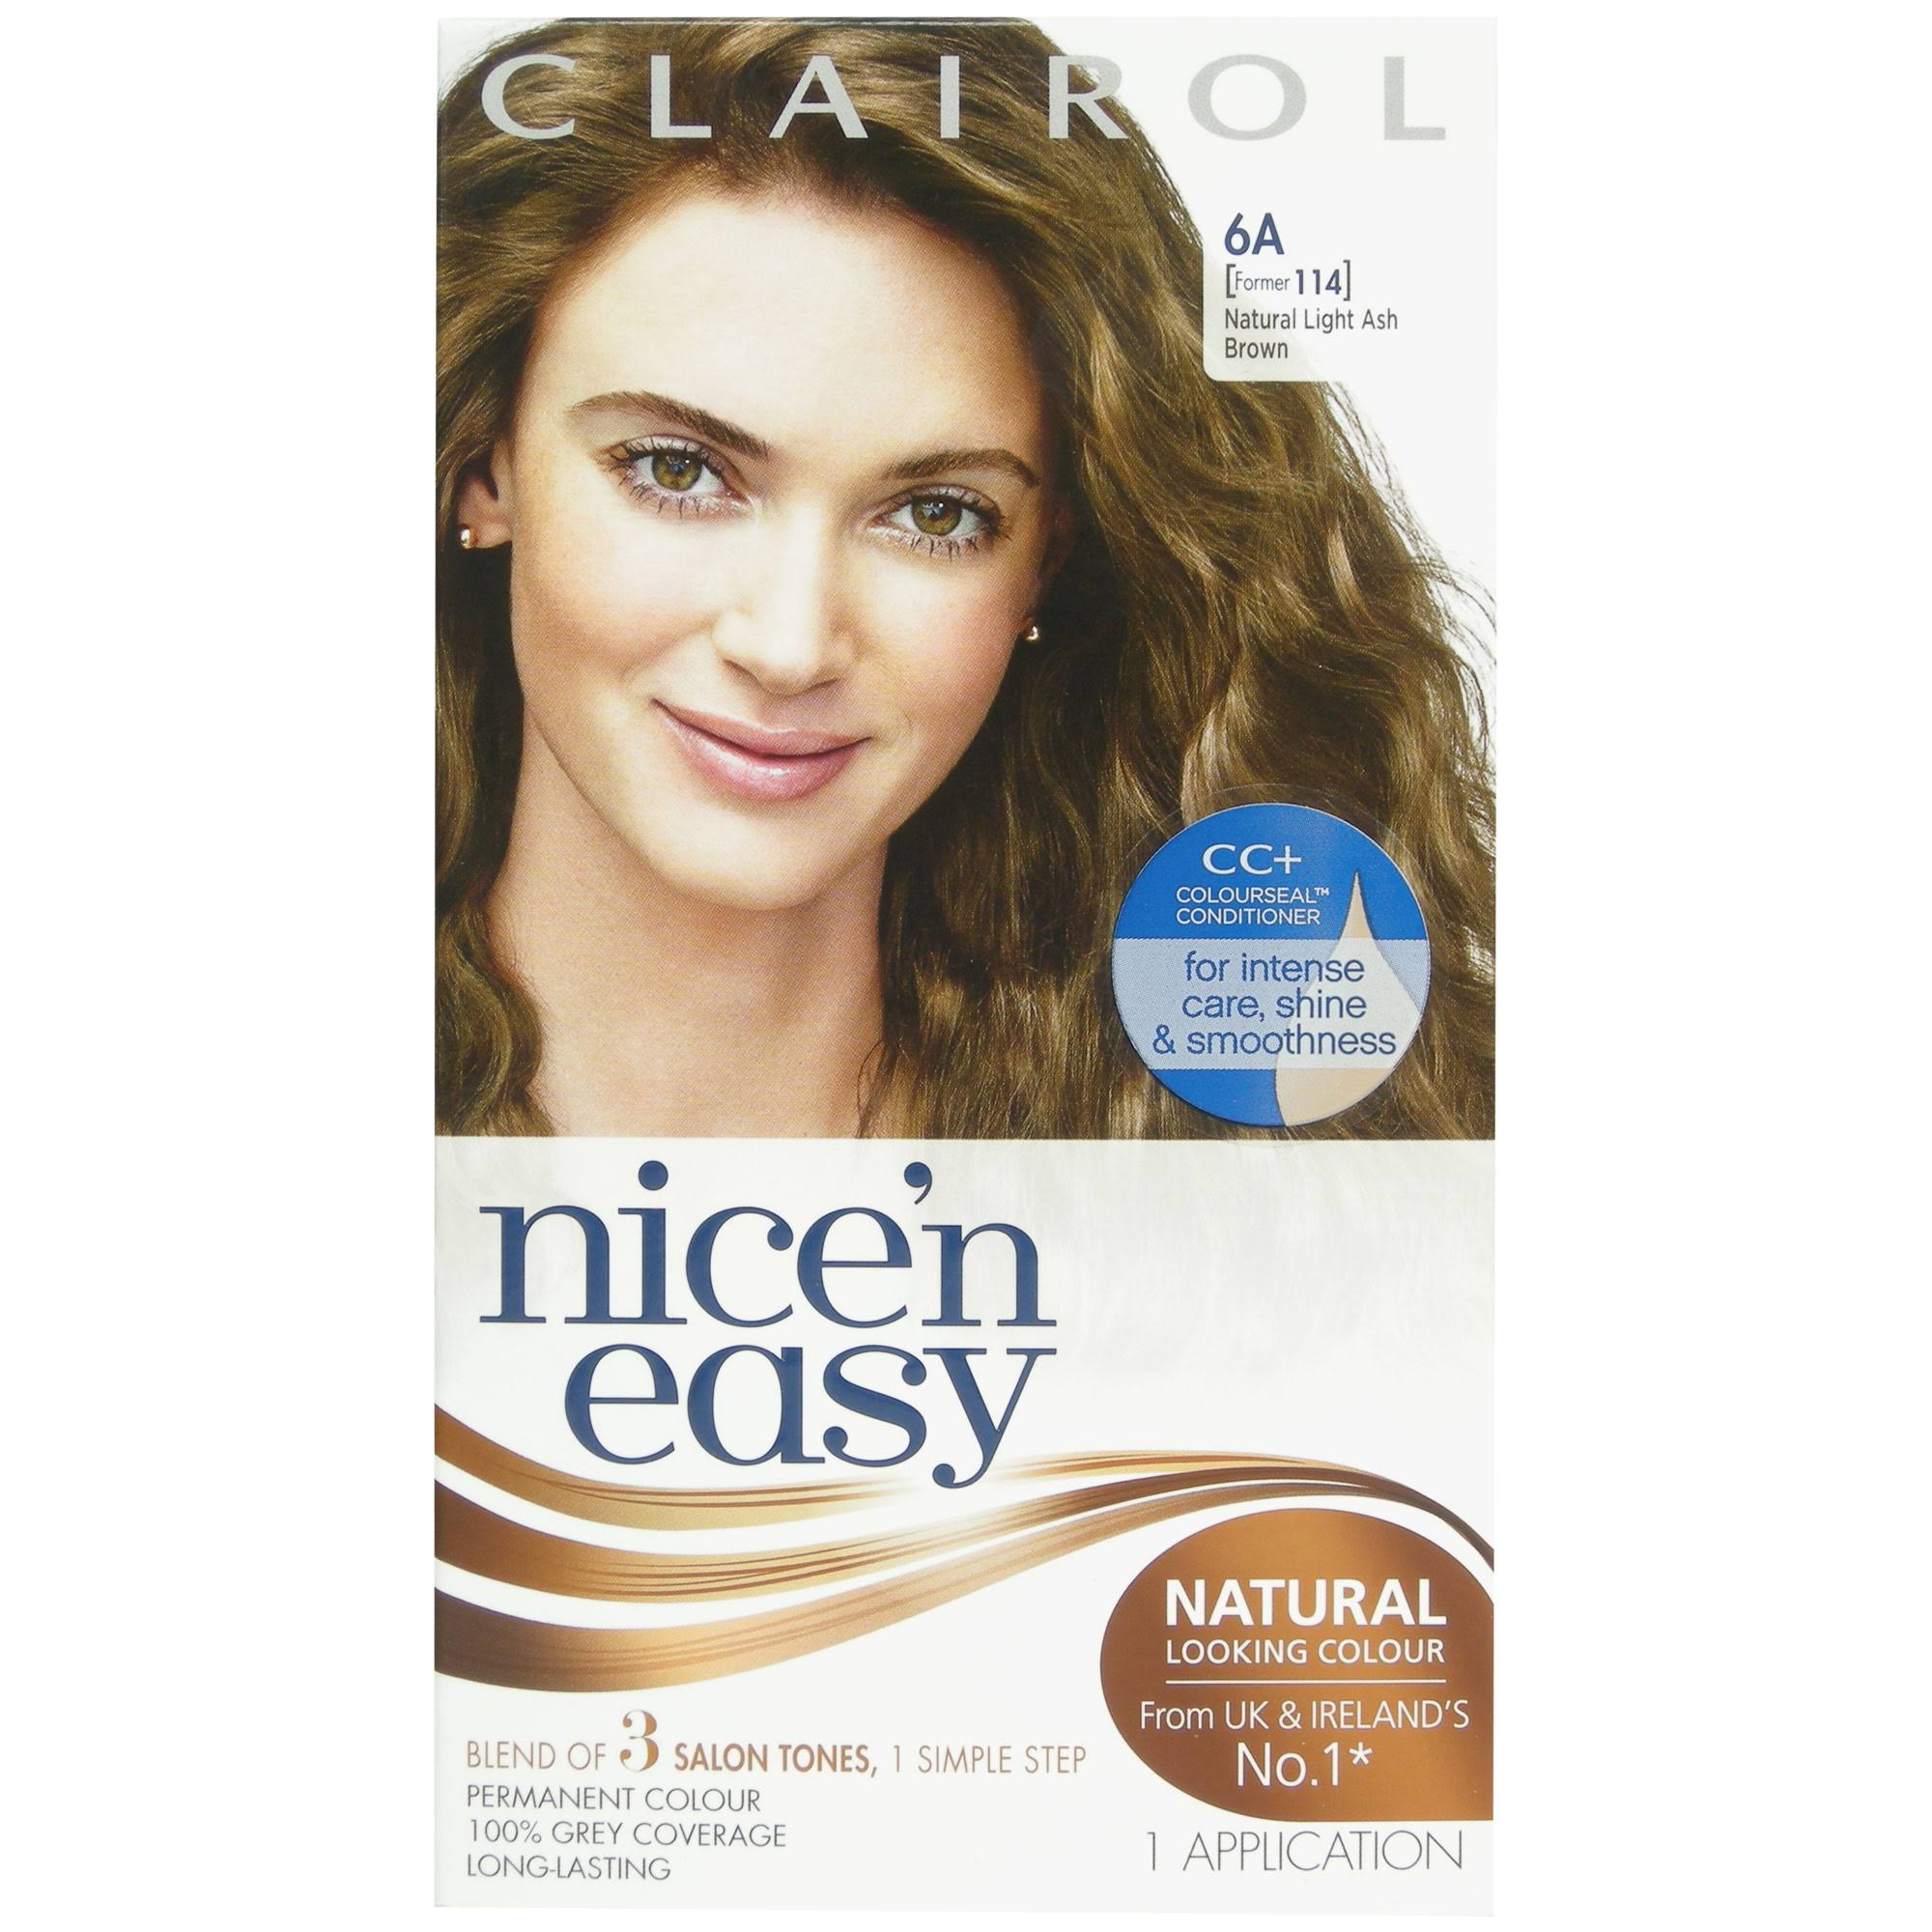 Clairol Nice & Easy Permanent Hair Dye - 6A Natural Light Ash Brown